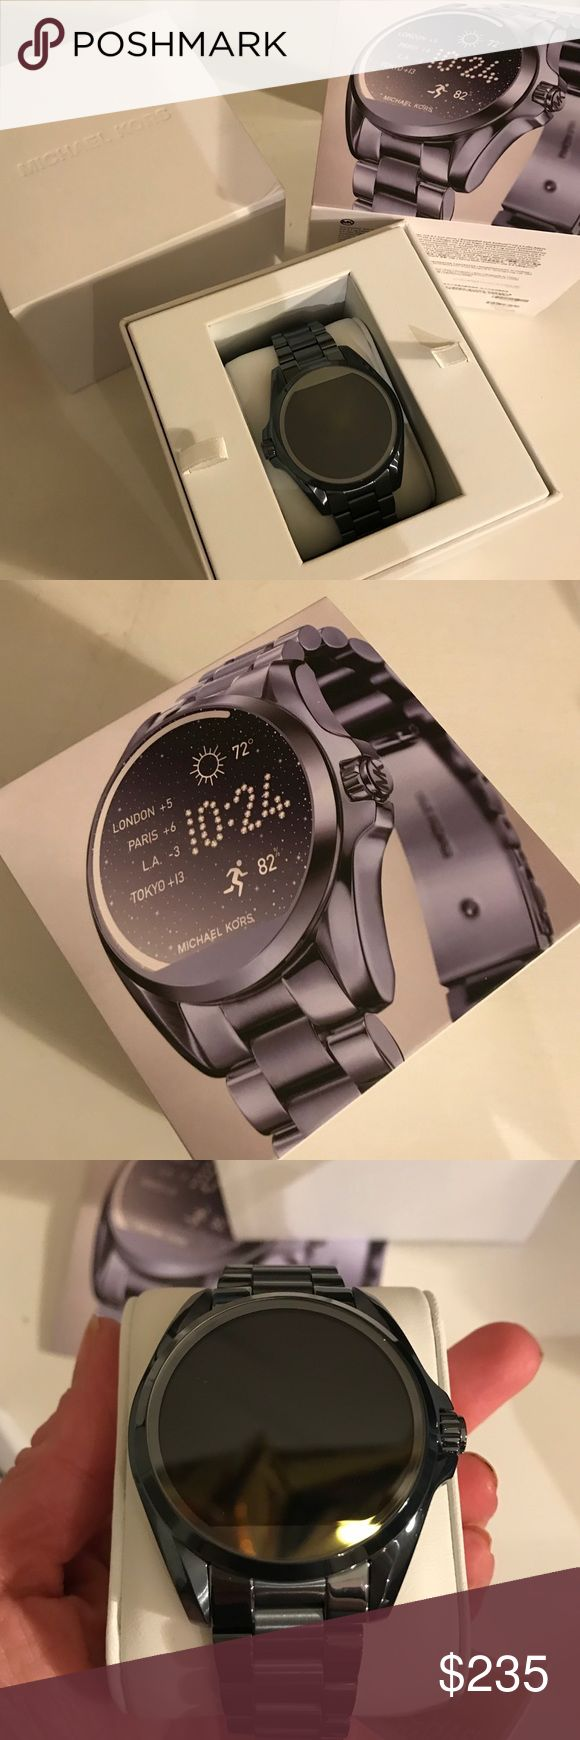 🎀NEW🎀MICHAEL KORS Bradshaw Gunmetal Smartwatch 🎀MICHAEL KORS🎀 Bradshaw Gunmetal Smartwatch. This is brand new!  Hard to find gunmetal color!  Compatible with iPhones and Androids❌NO TRADING OR HOLDING. ❌PRICE IS FIRM ❌ Michael Kors Accessories Watches